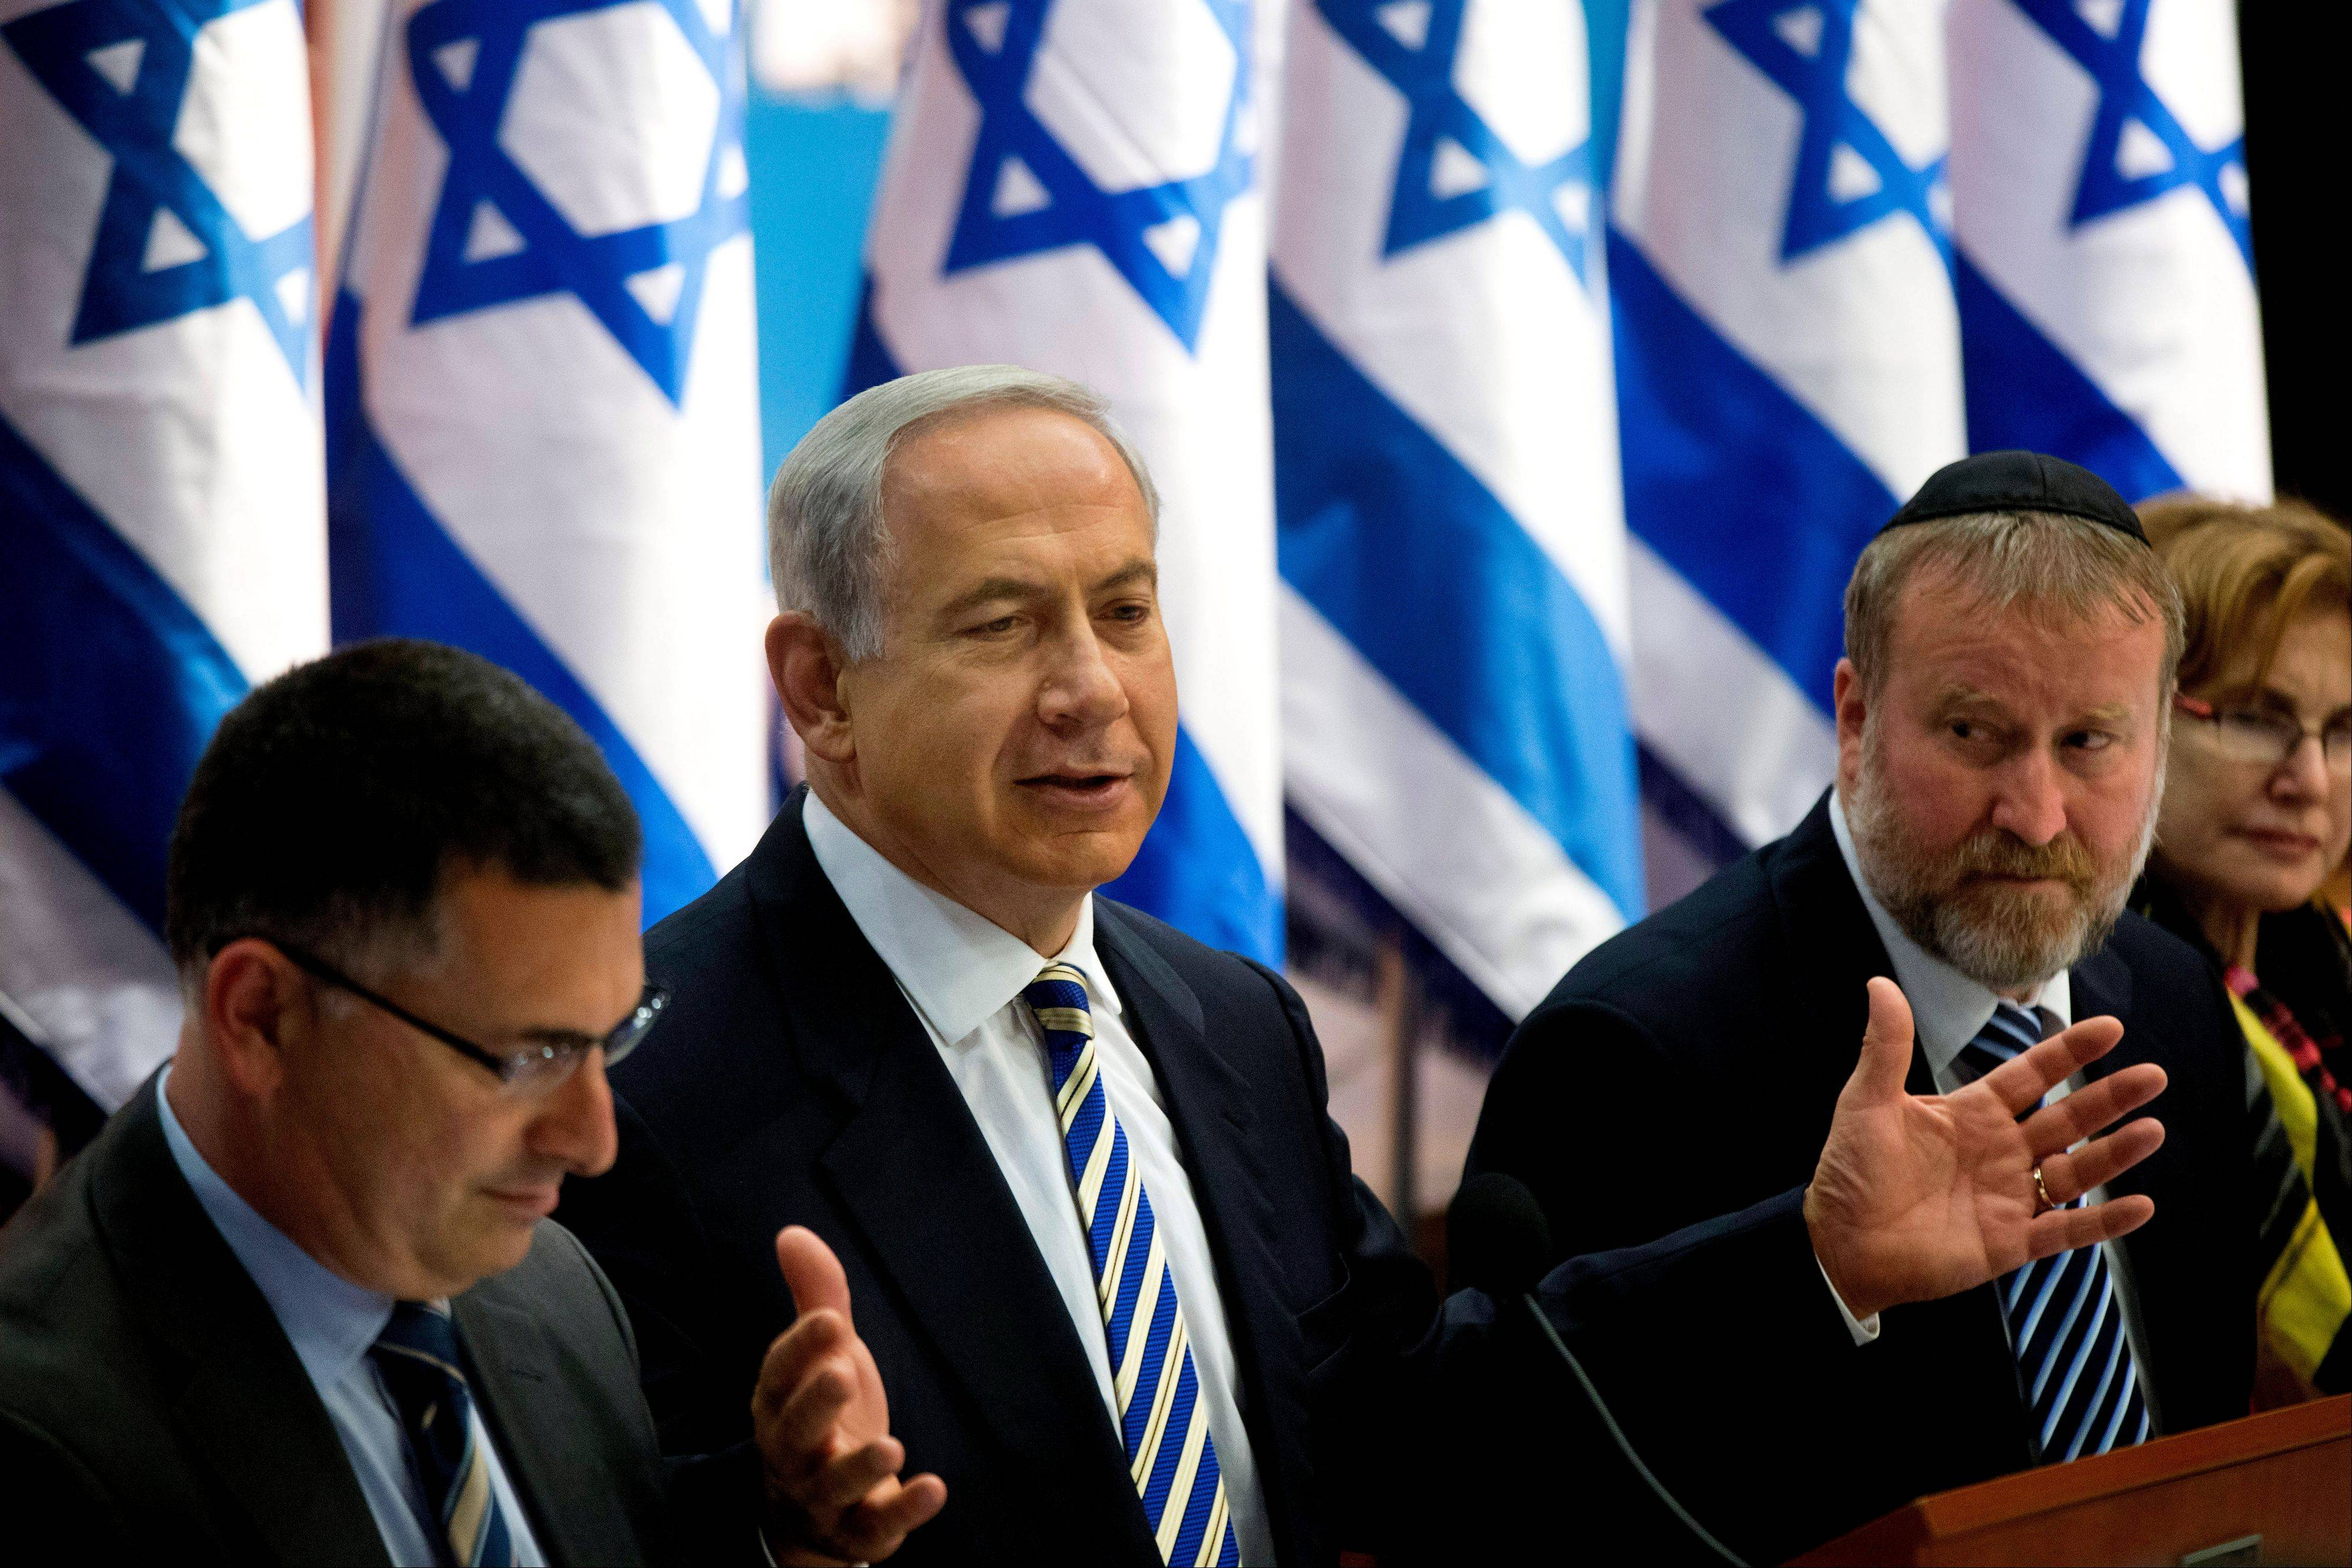 Israel�s Prime Minister Benjamin Netanyahu, center, speaks during the weekly cabinet meeting in Jerusalem, Sunday, July 21, 2013. Netanyahu says he is fast-tracking legislation that will allow him to put any future peace deal with the Palestinians to a referendum in Israel.